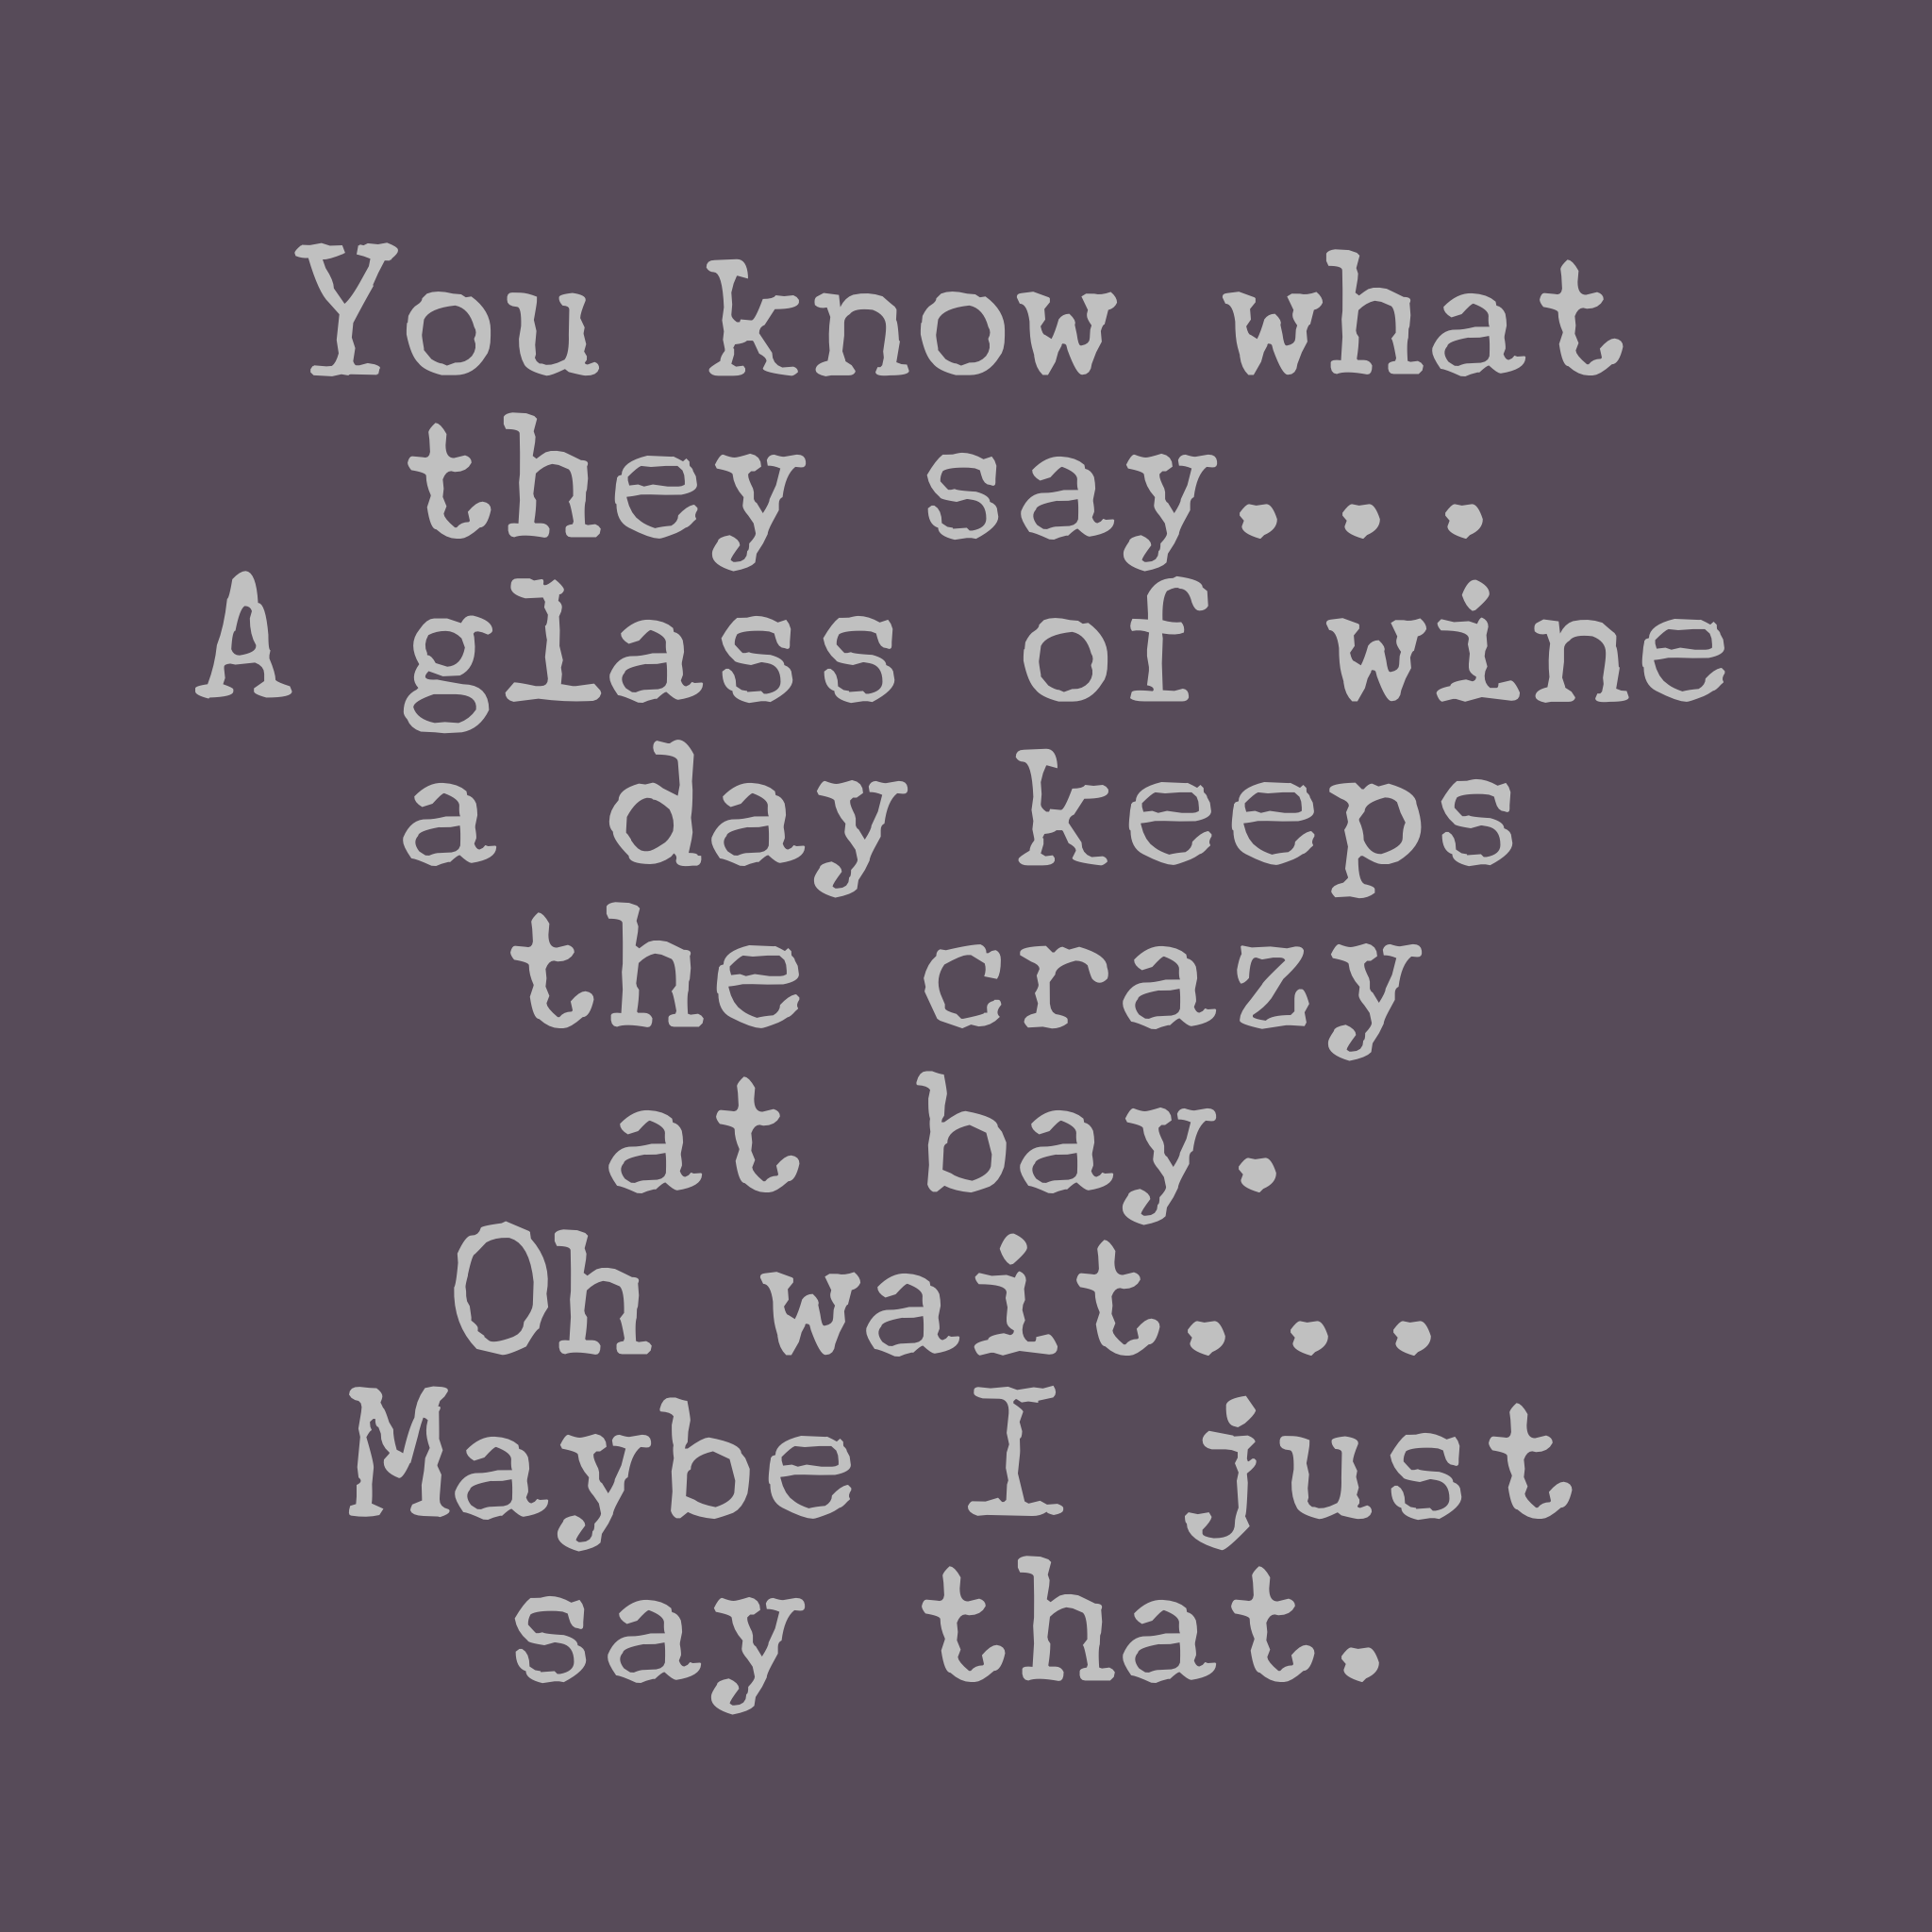 You Know What They Say Quotes You Know What They Saya Glass Of Wine A Day Keeps The Crazy At